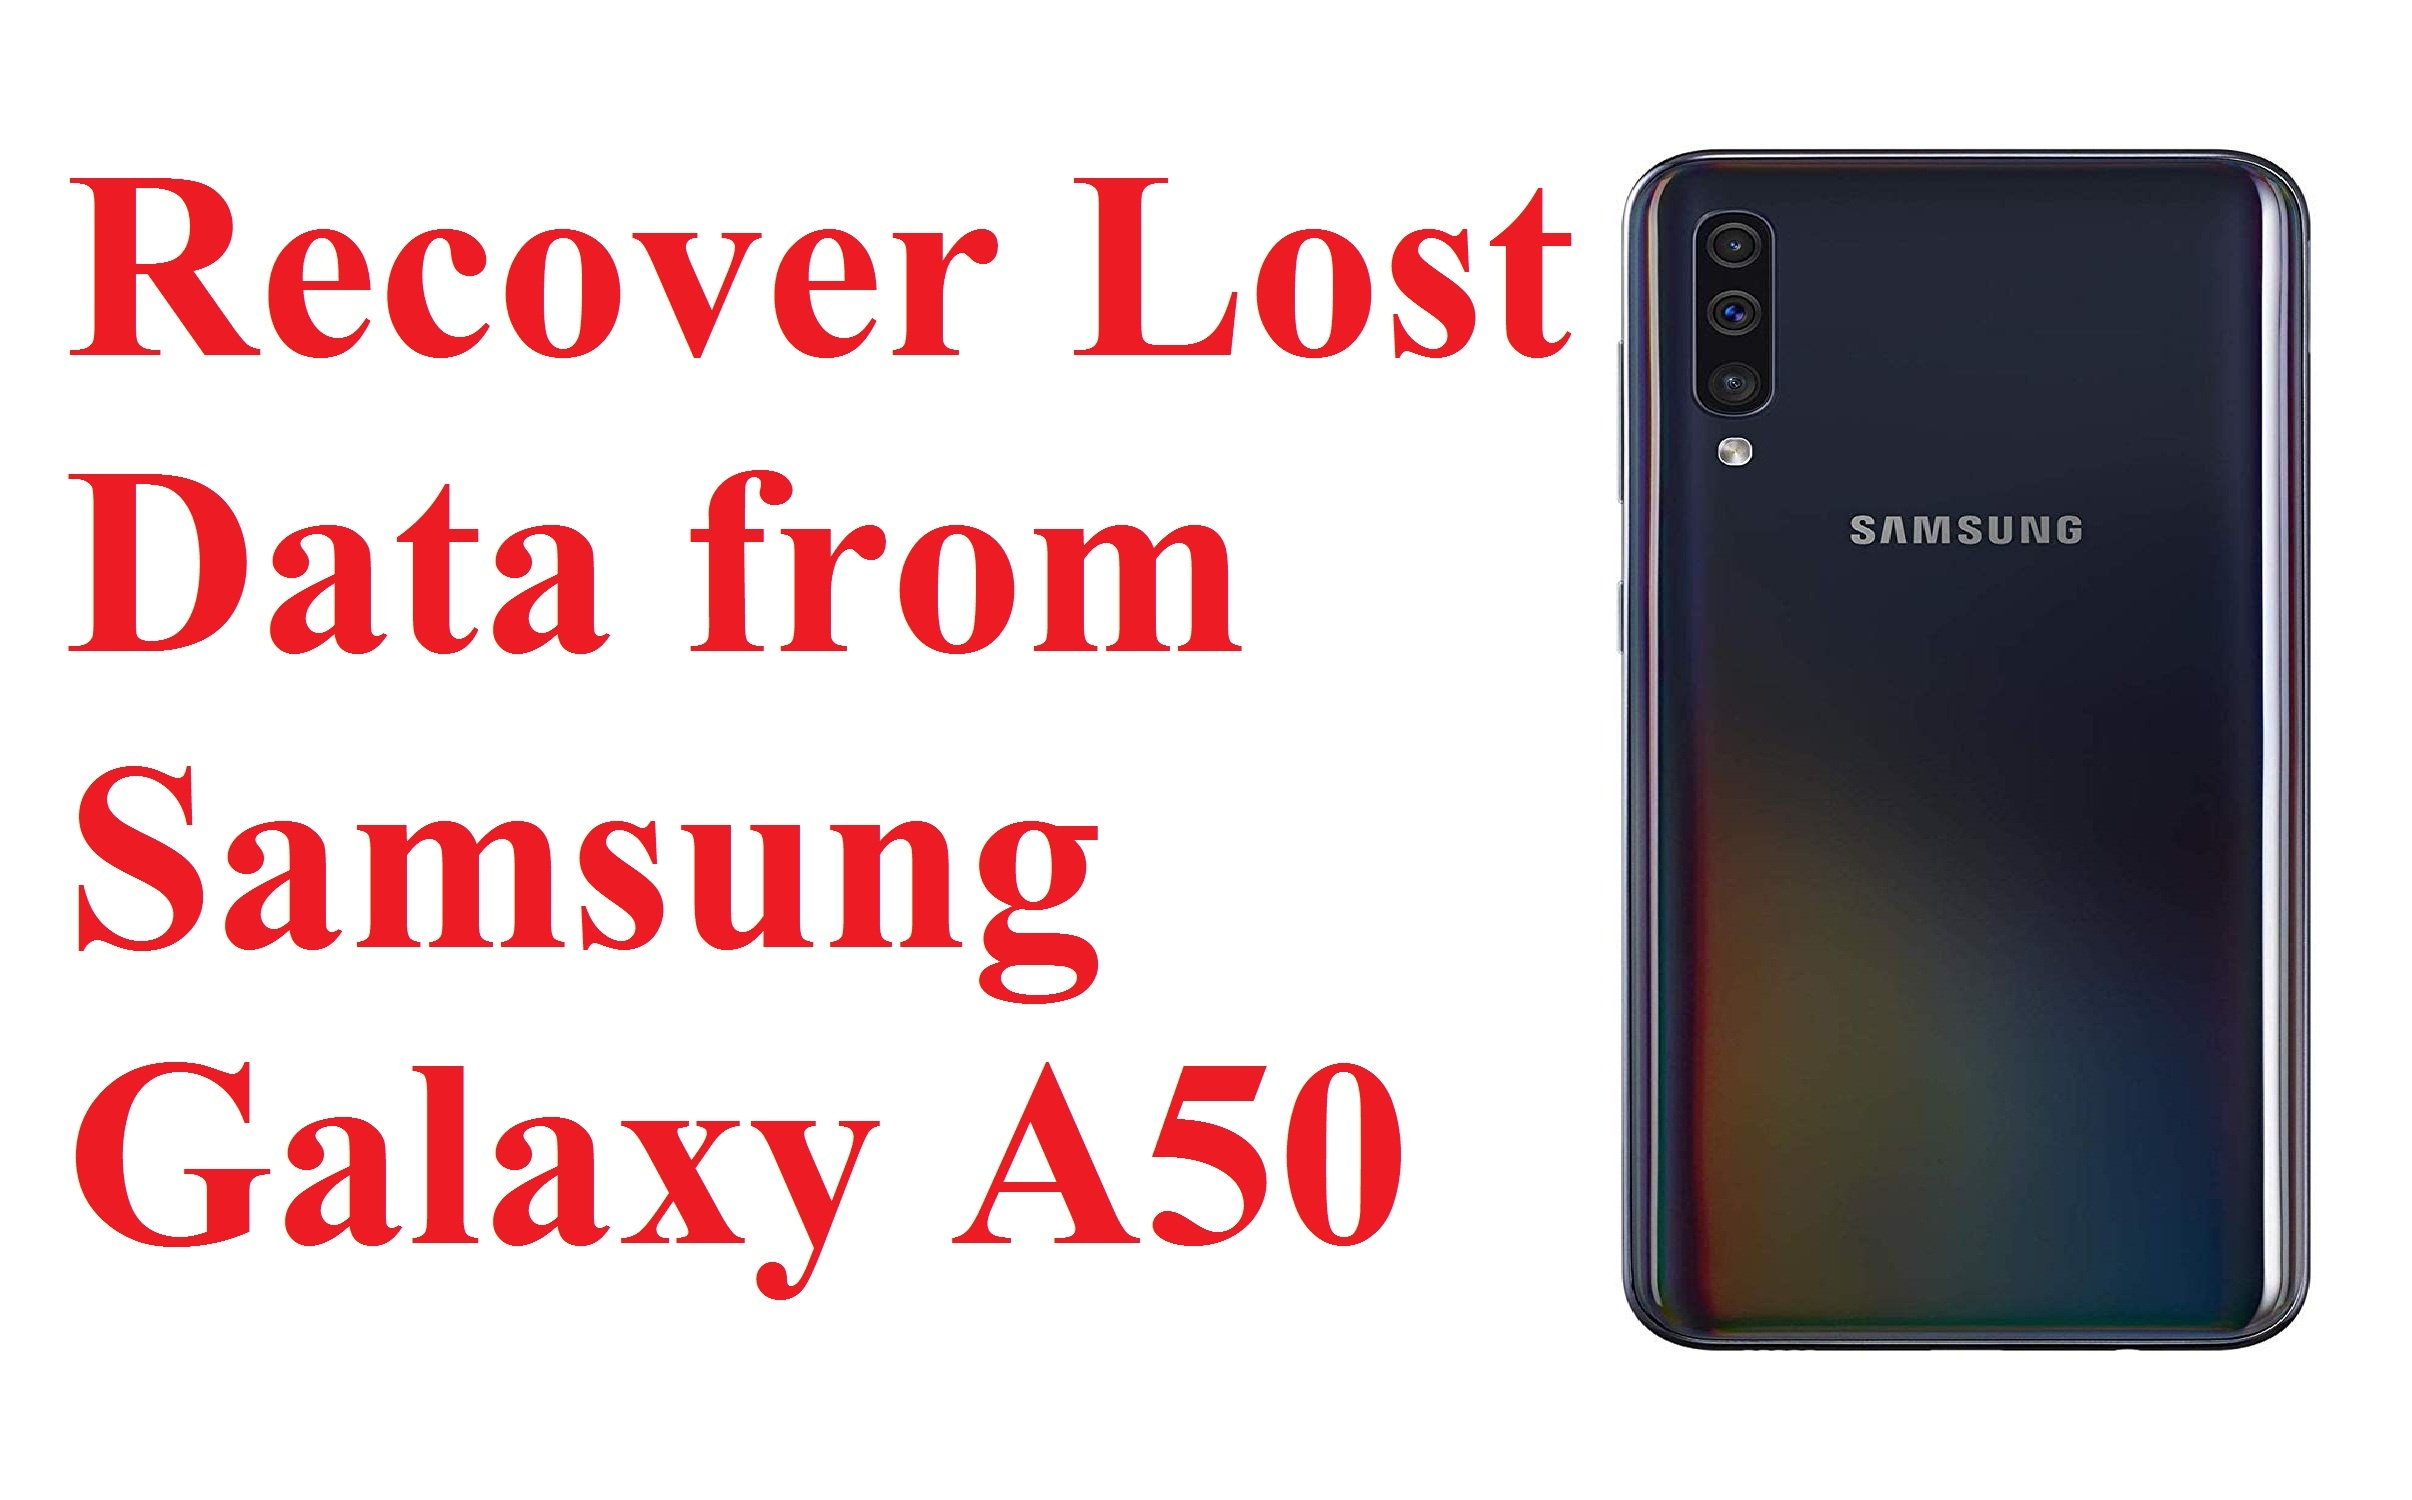 Learn to recover lost data from Samsung Galaxy A50 phone